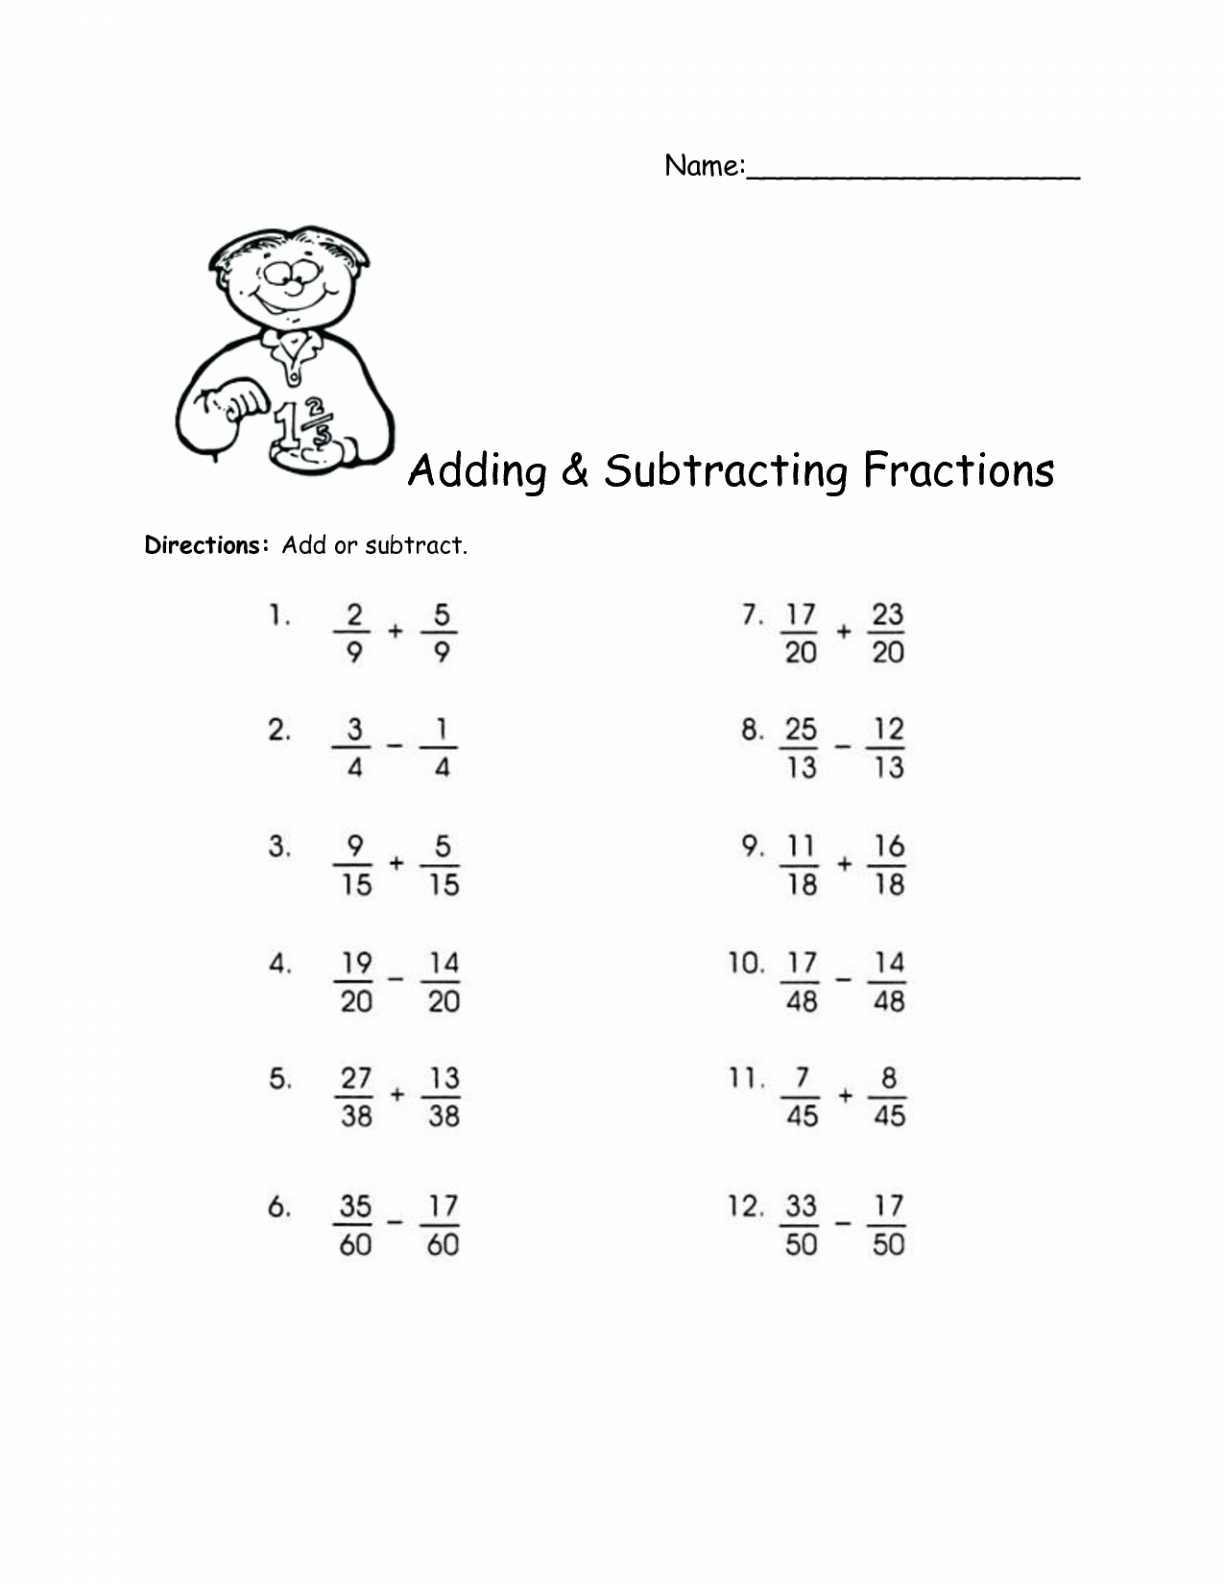 Subtracting Fractions with Unlike Denominators Worksheet together with Adding Subtracting Fractions Worksheets Mixed Pdf and with Unlike